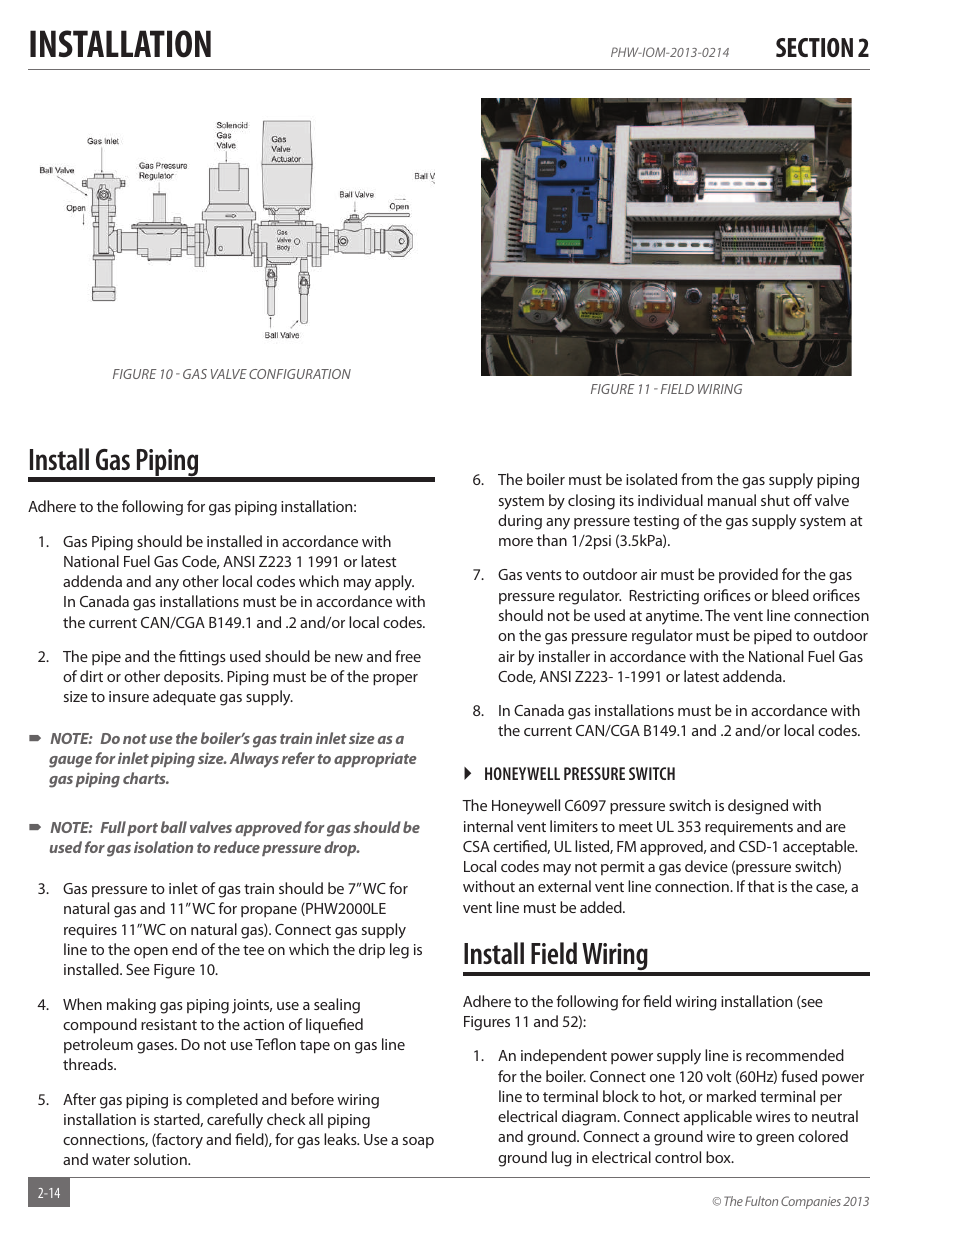 Installation install gas piping install field wiring fulton installation install gas piping install field wiring fulton pulse hw phw fully condensing hydronic boiler user manual page 20 84 keyboard keysfo Images